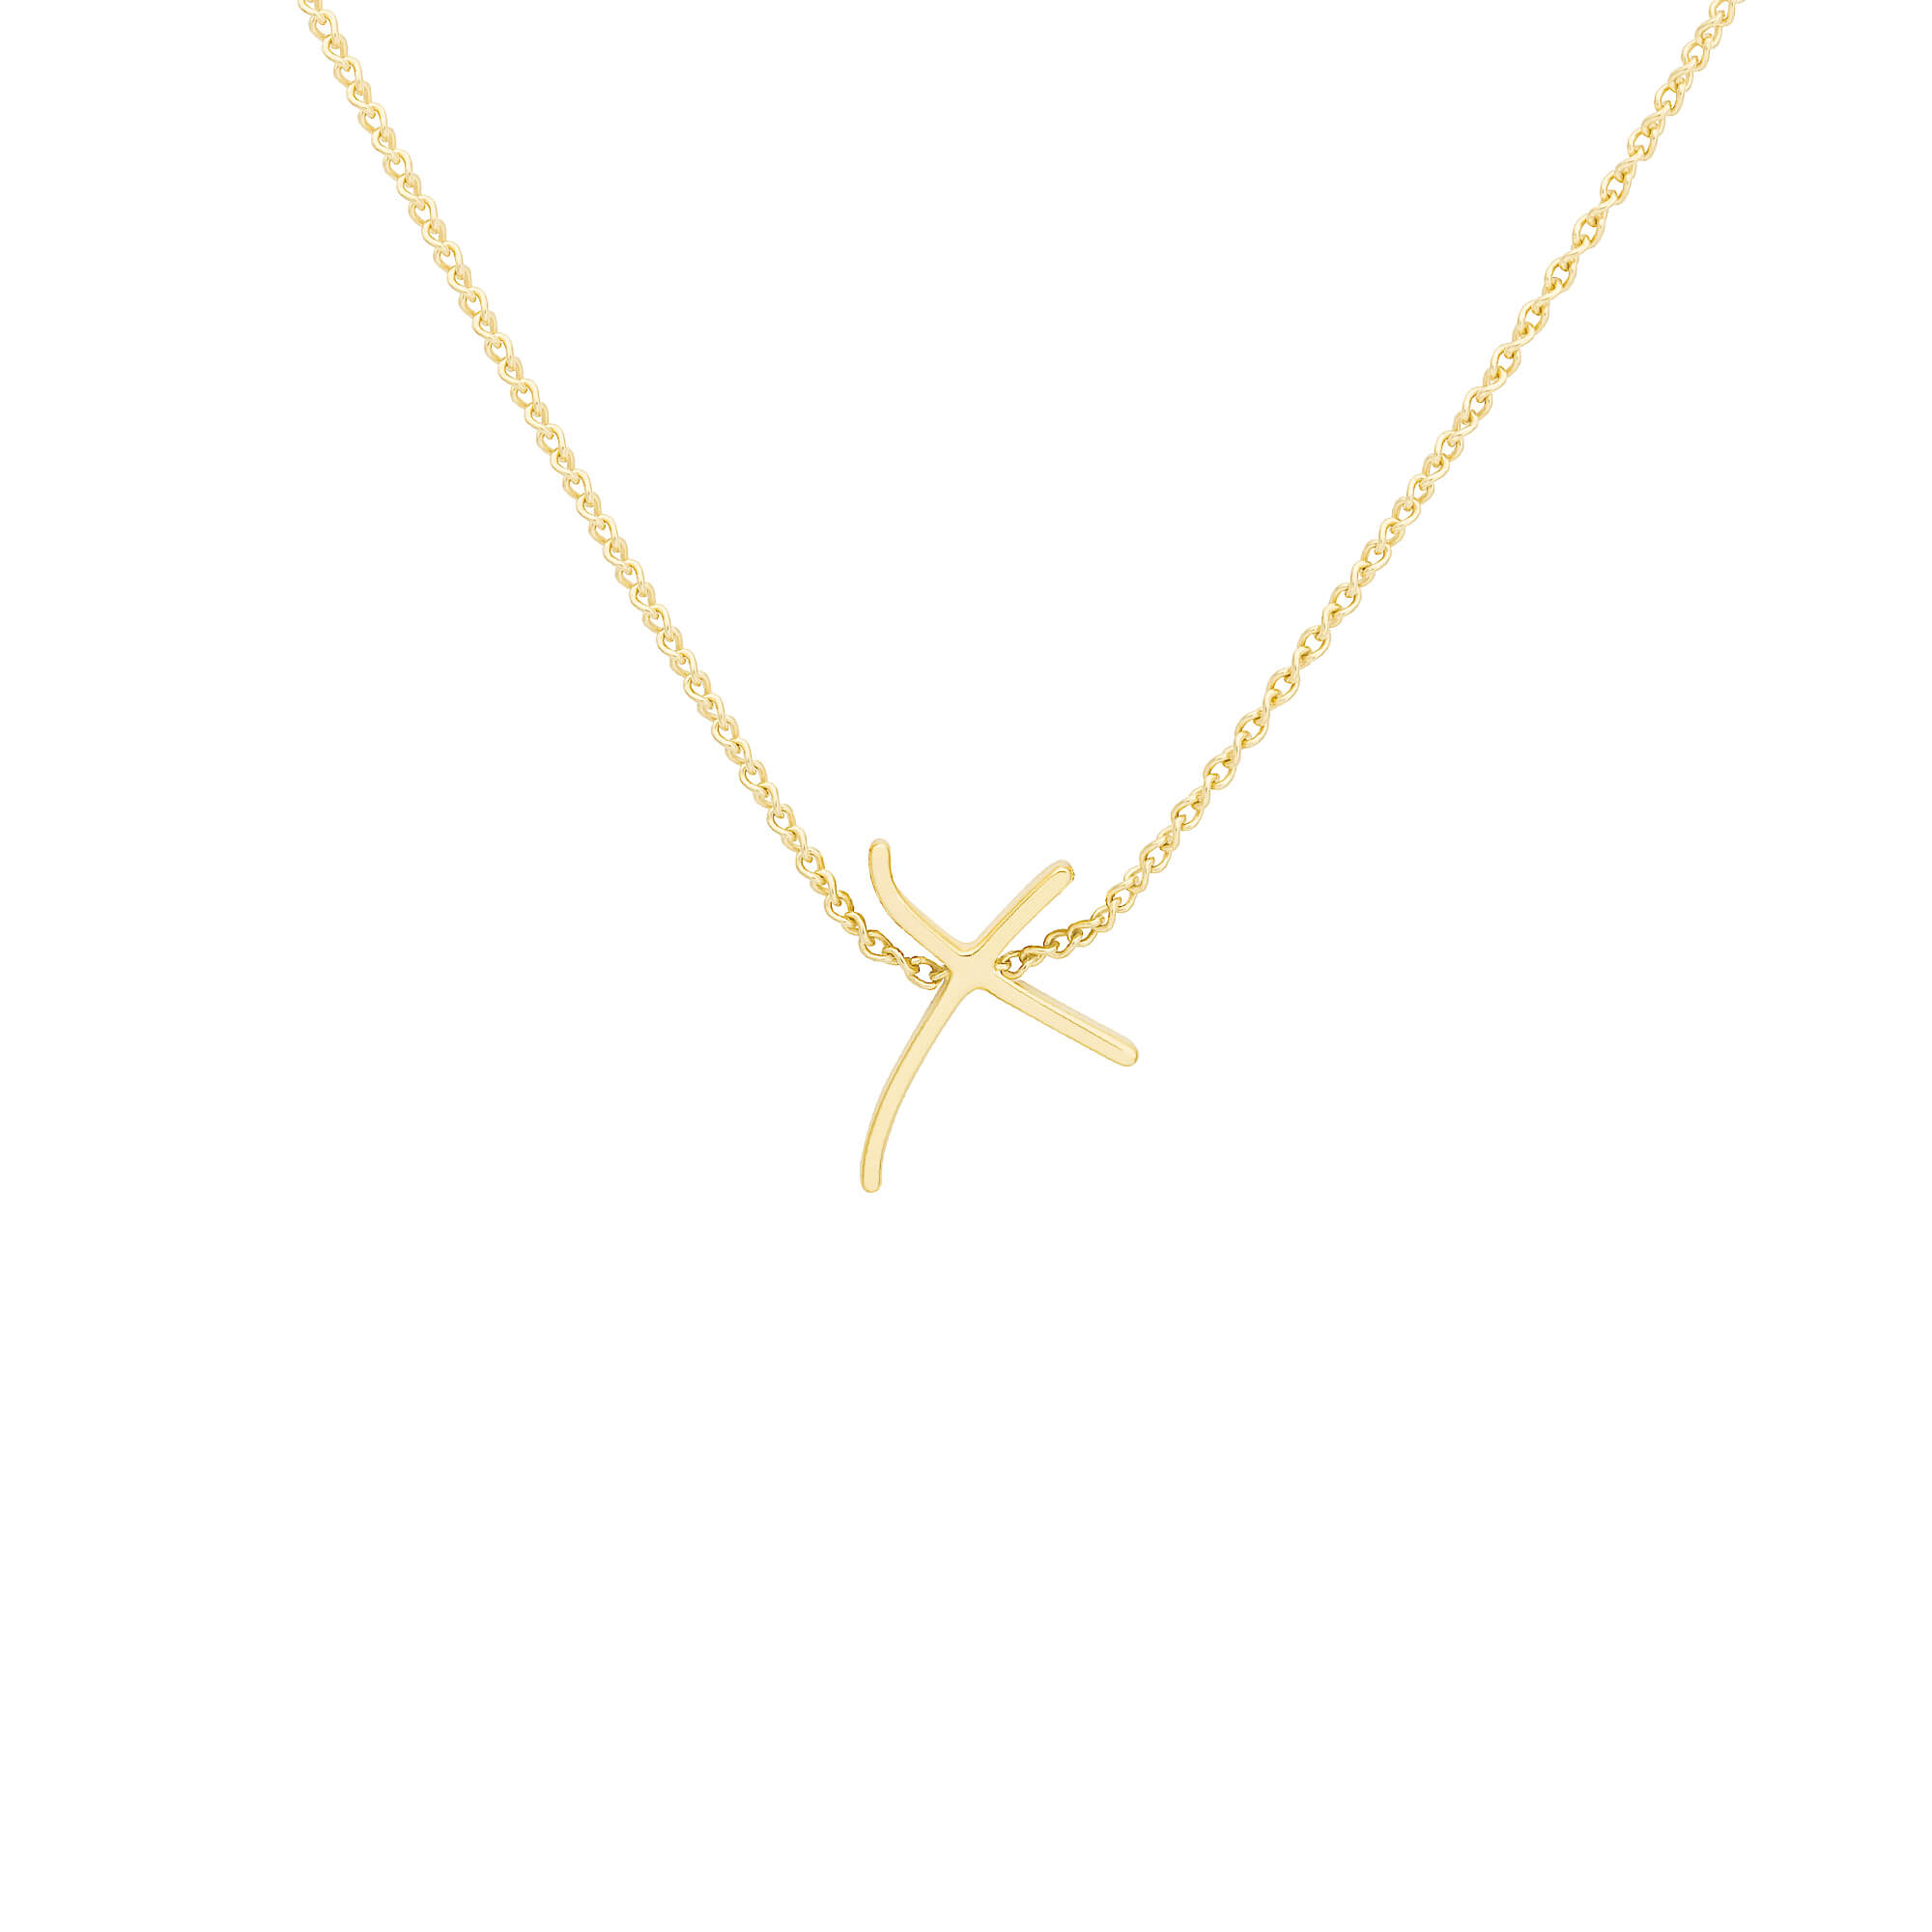 Neon Yellow Gold Emin Kiss Pendant | I Promise To Love You